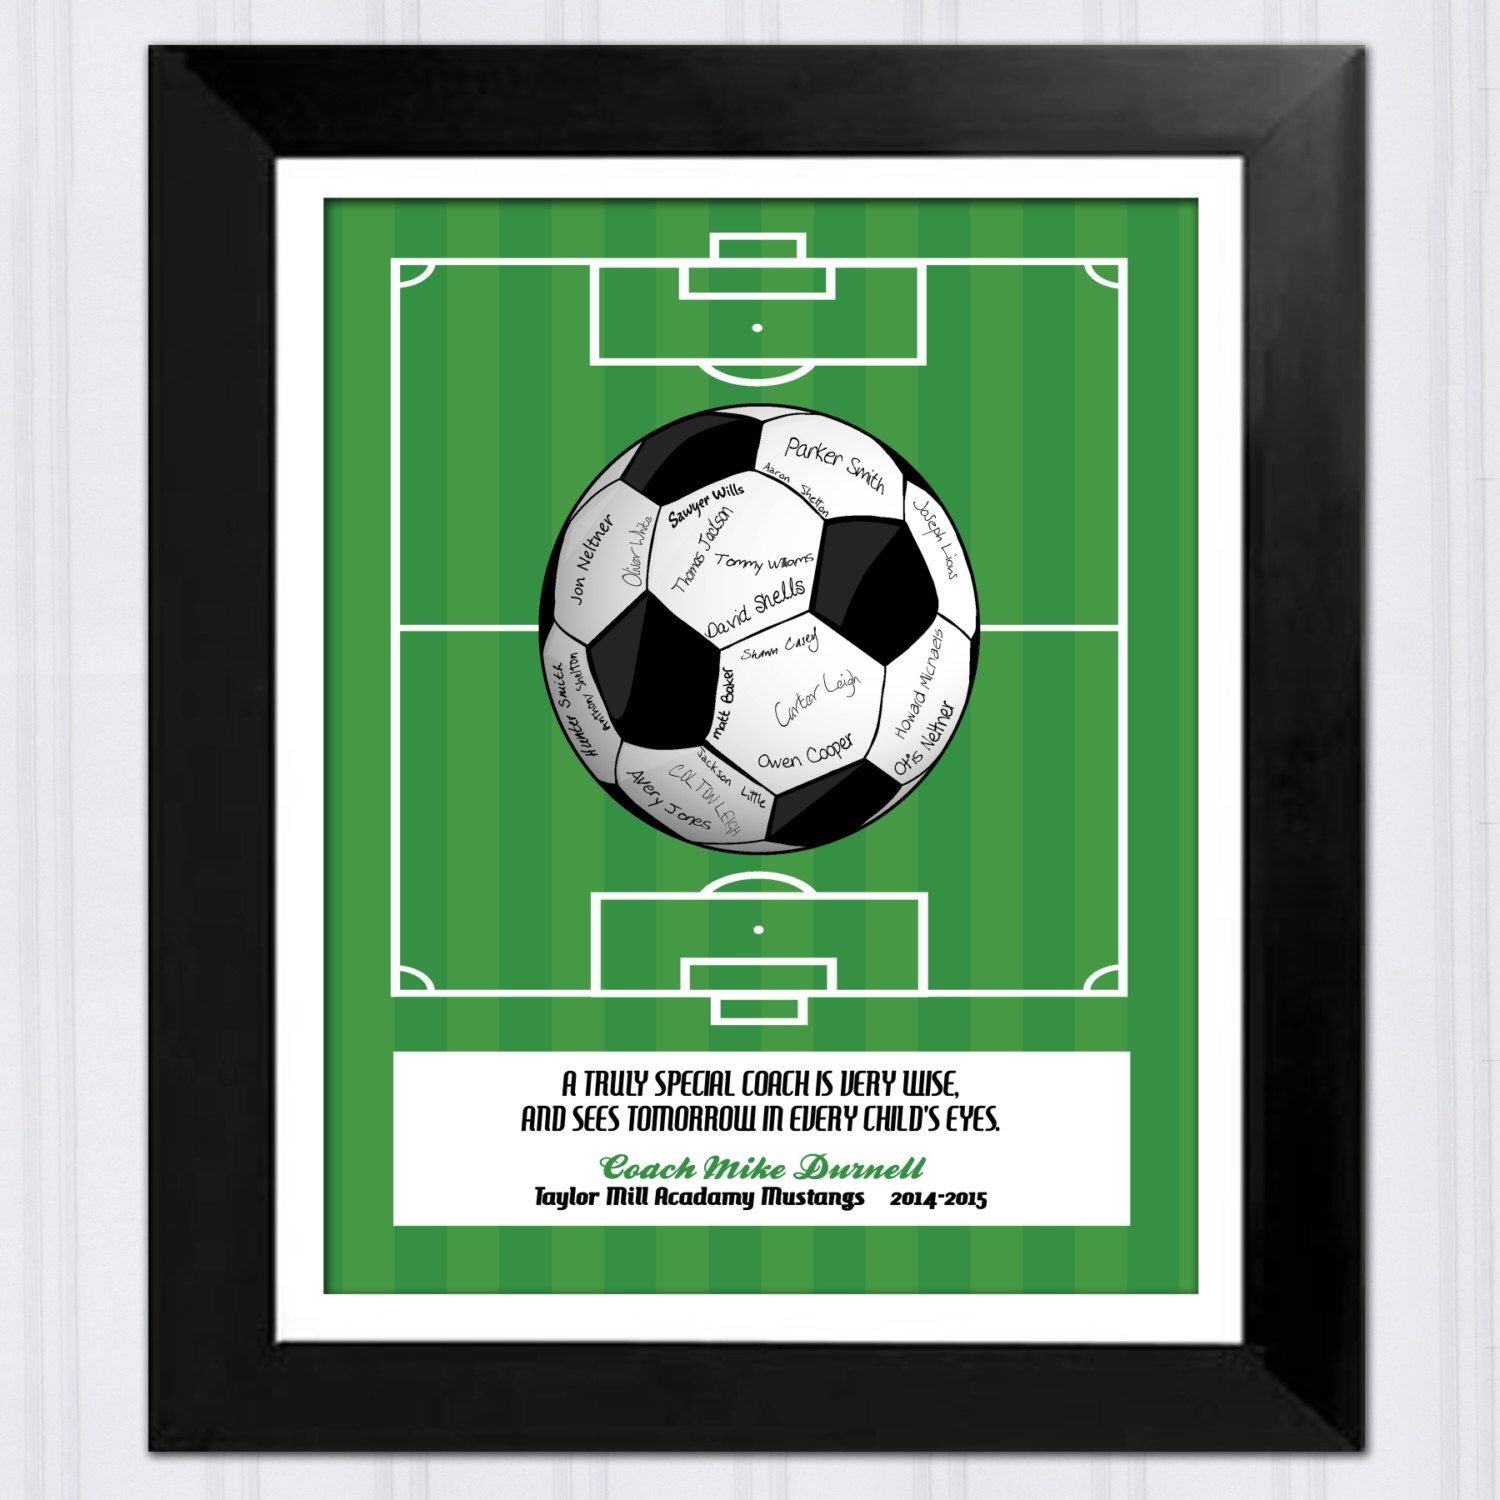 eb930f608 Personalized Gift for Soccer Coach - Printable File - Signed Soccer Team  Gift - Christmas Gift - Thank you Gift for Coach from Team